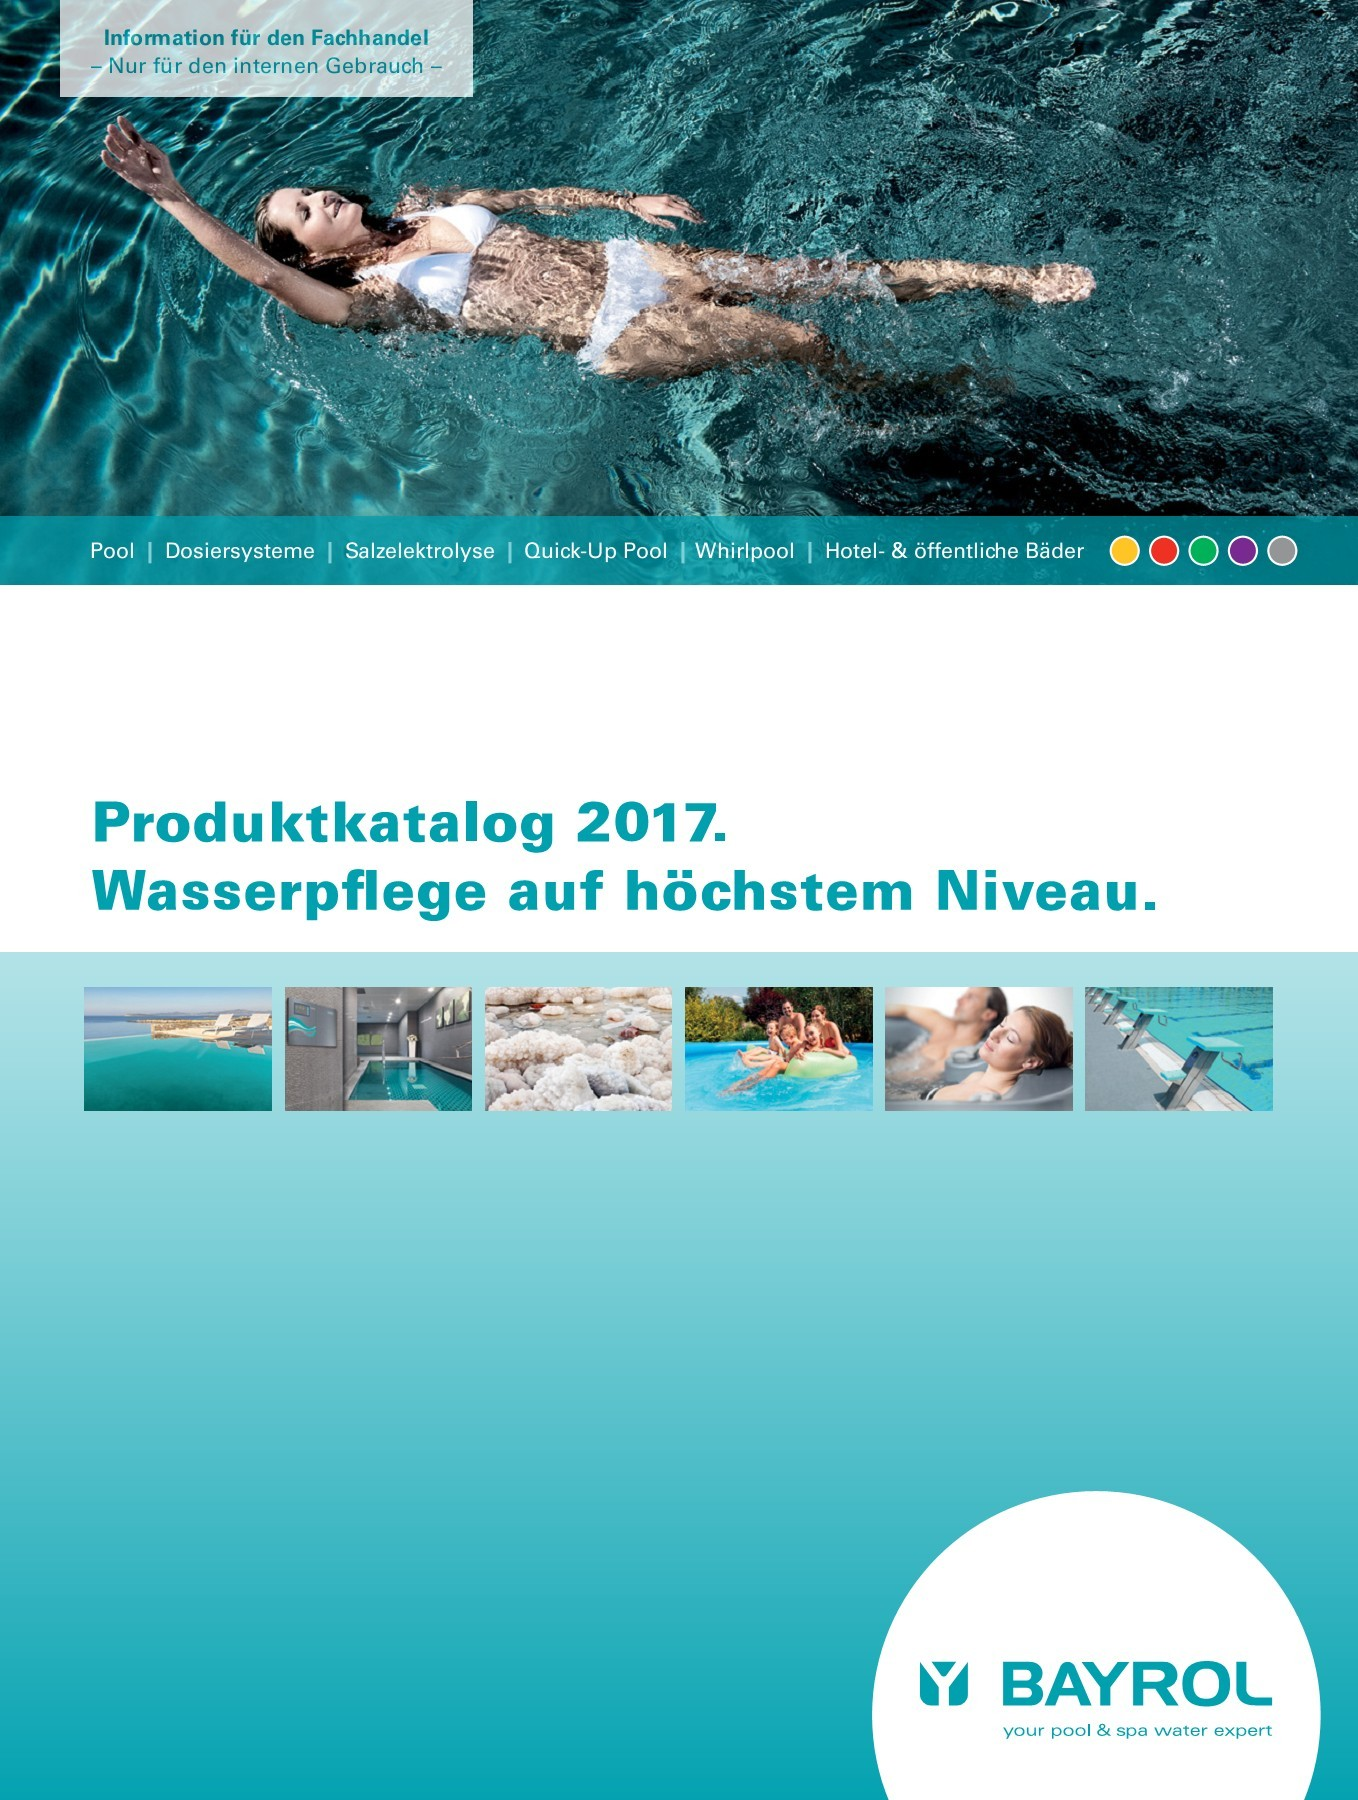 Bodensauger Für Quick Up Pool Product Catalogue Pages 1 50 Text Version Fliphtml5